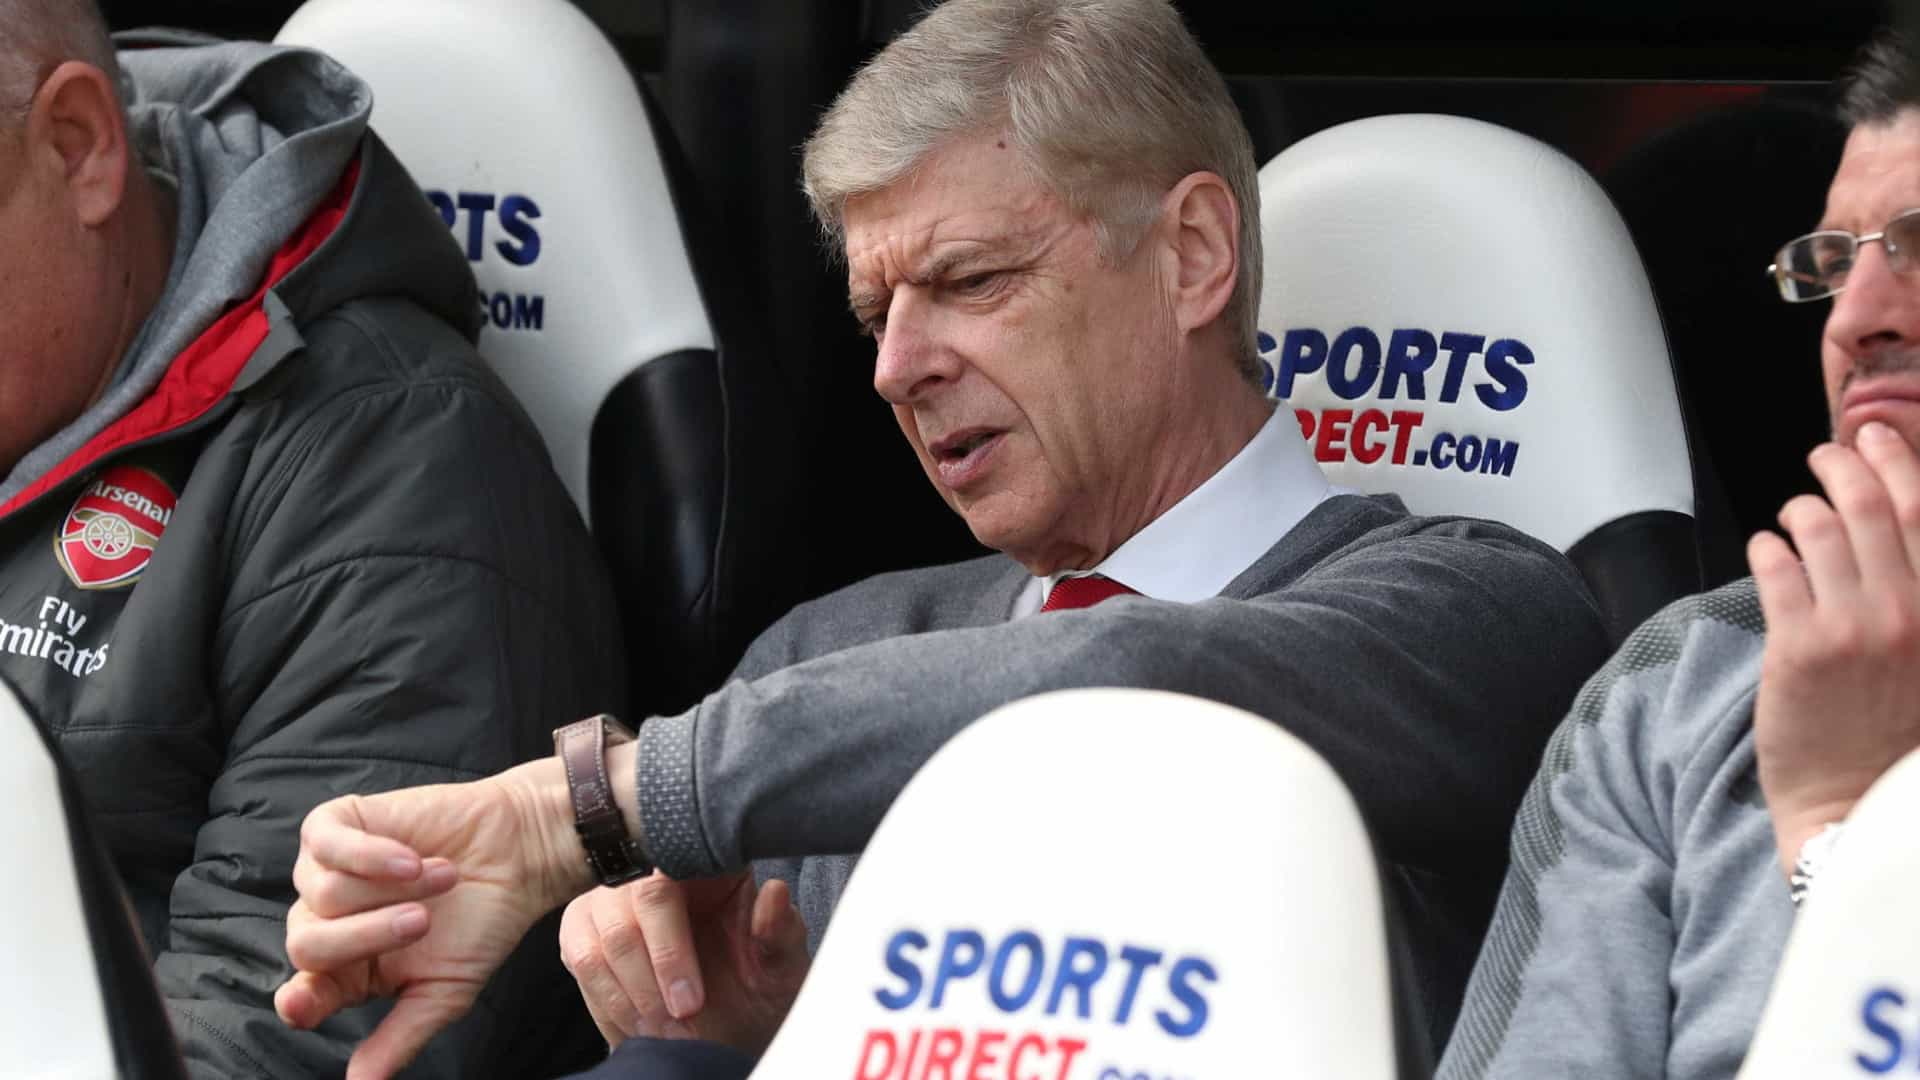 Arsène Wenger deixa Arsenal no final da temporada